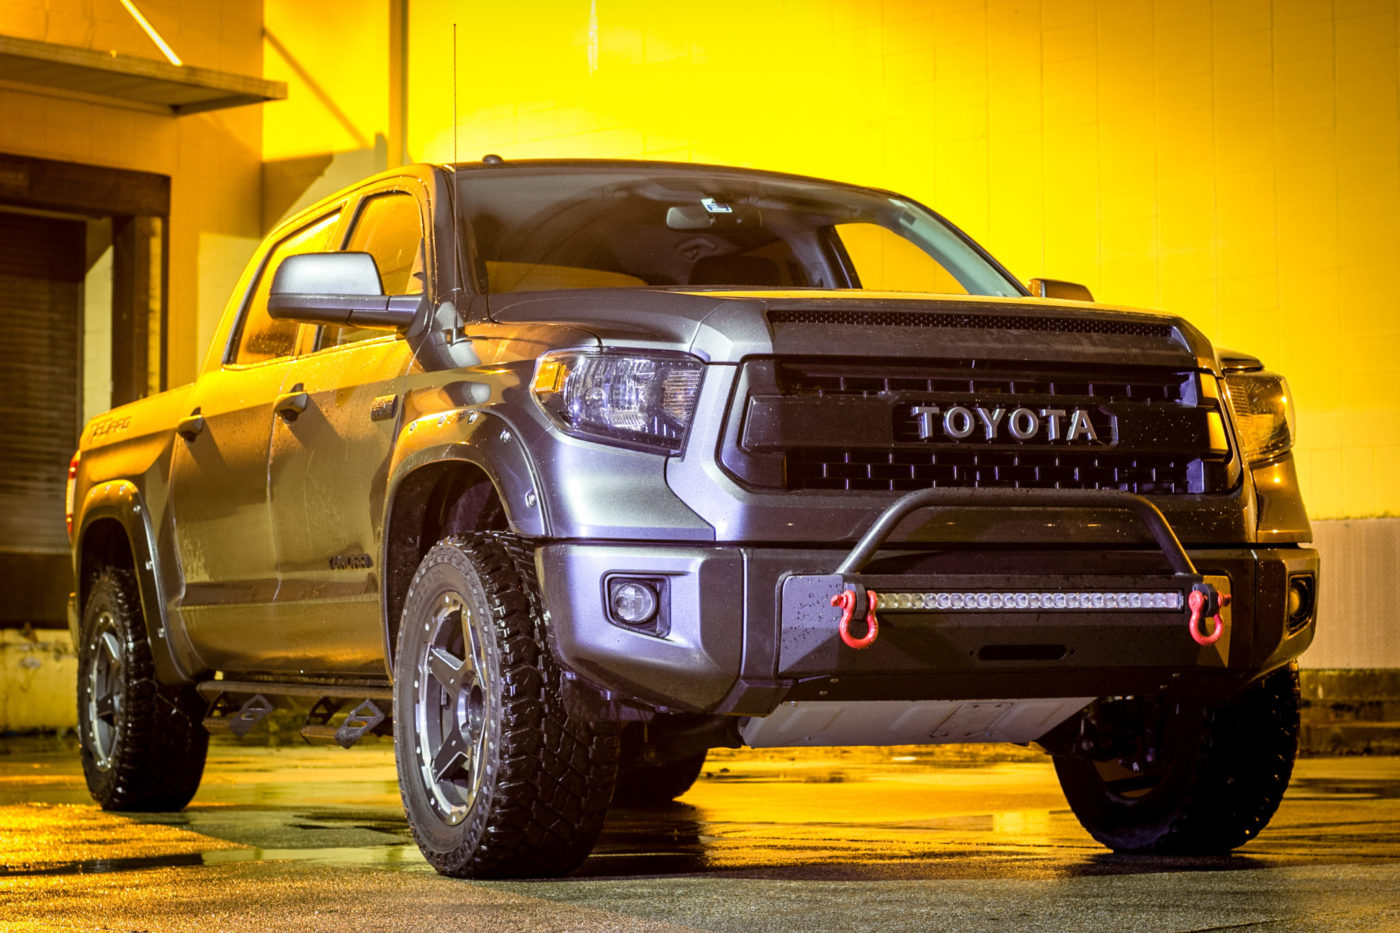 Southern Style Offroad Toyota Tundra Toyota 4runner Bumper